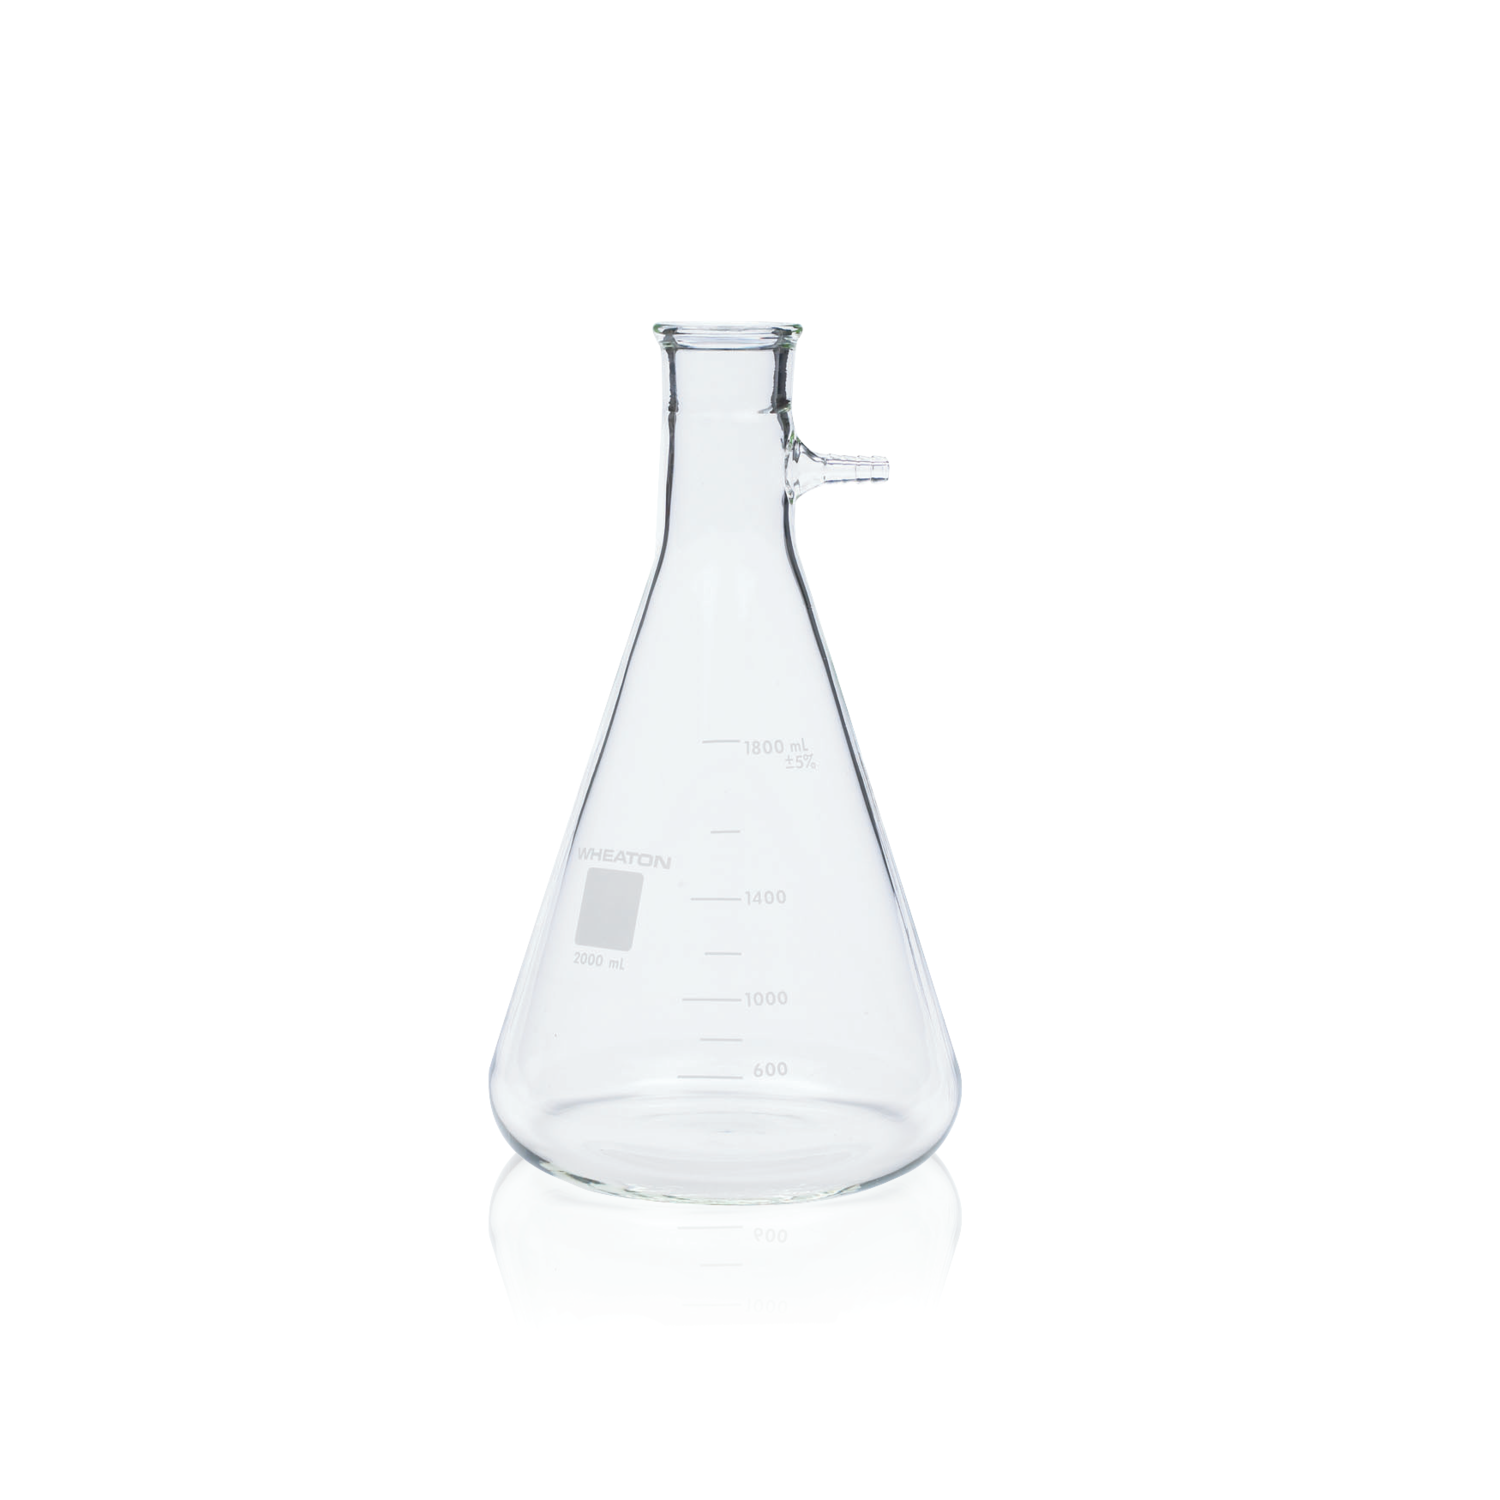 WHEATON® Filter Flask, Graduated, No. 8 Stopper Joint, 1000 mL